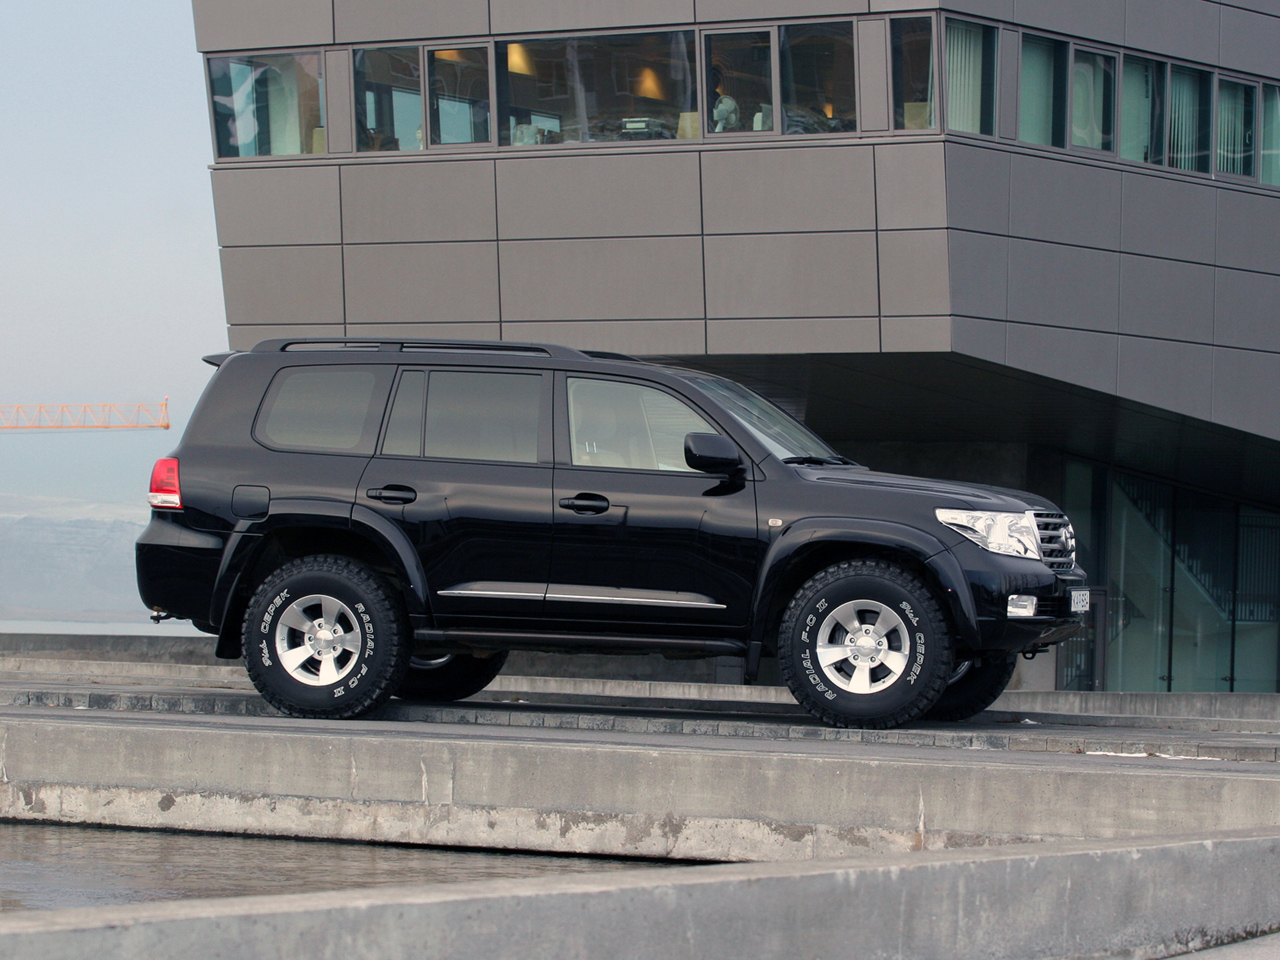 Arctic Trucks Toyota Land Cruiser 200 Photos